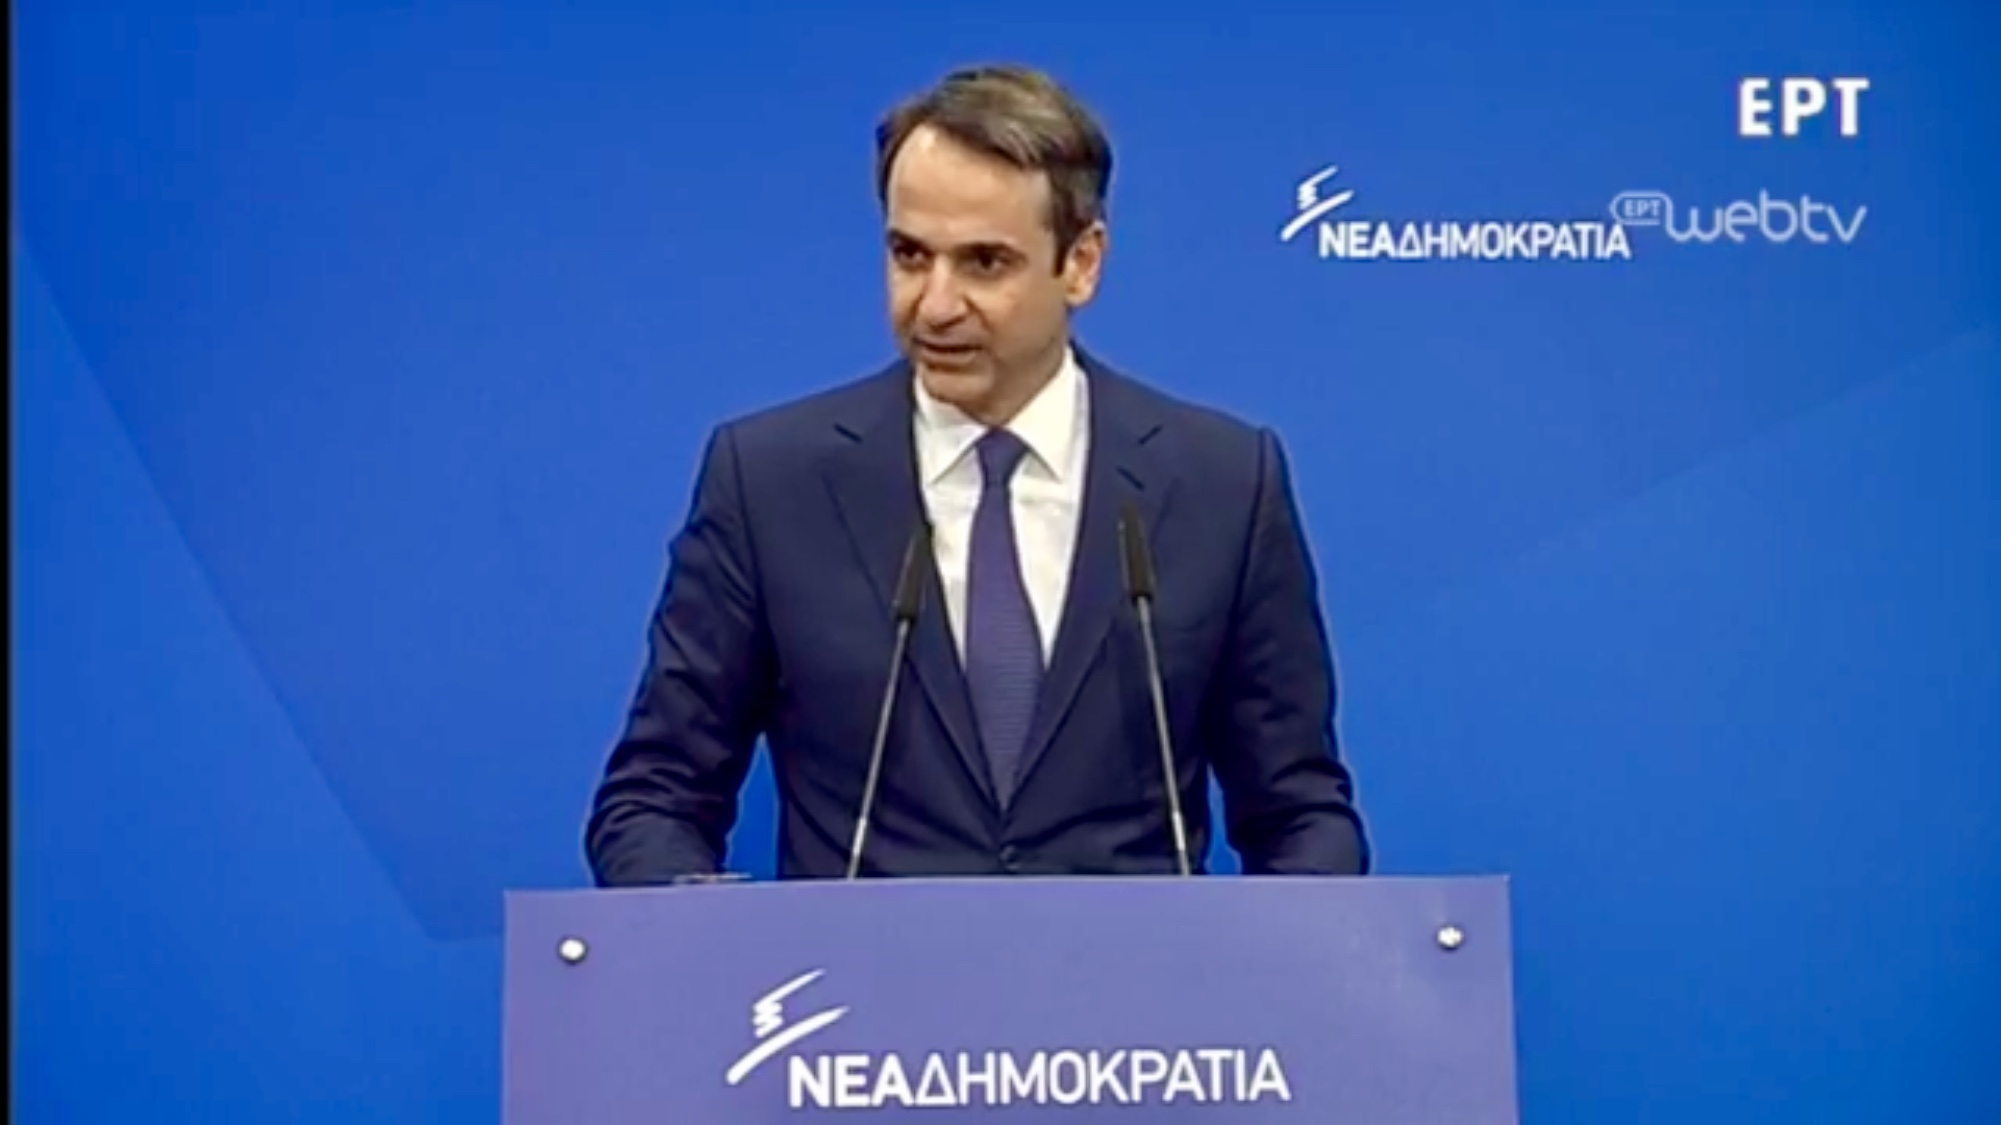 The solution must be sought at another conjuncture, Mitsotakis says